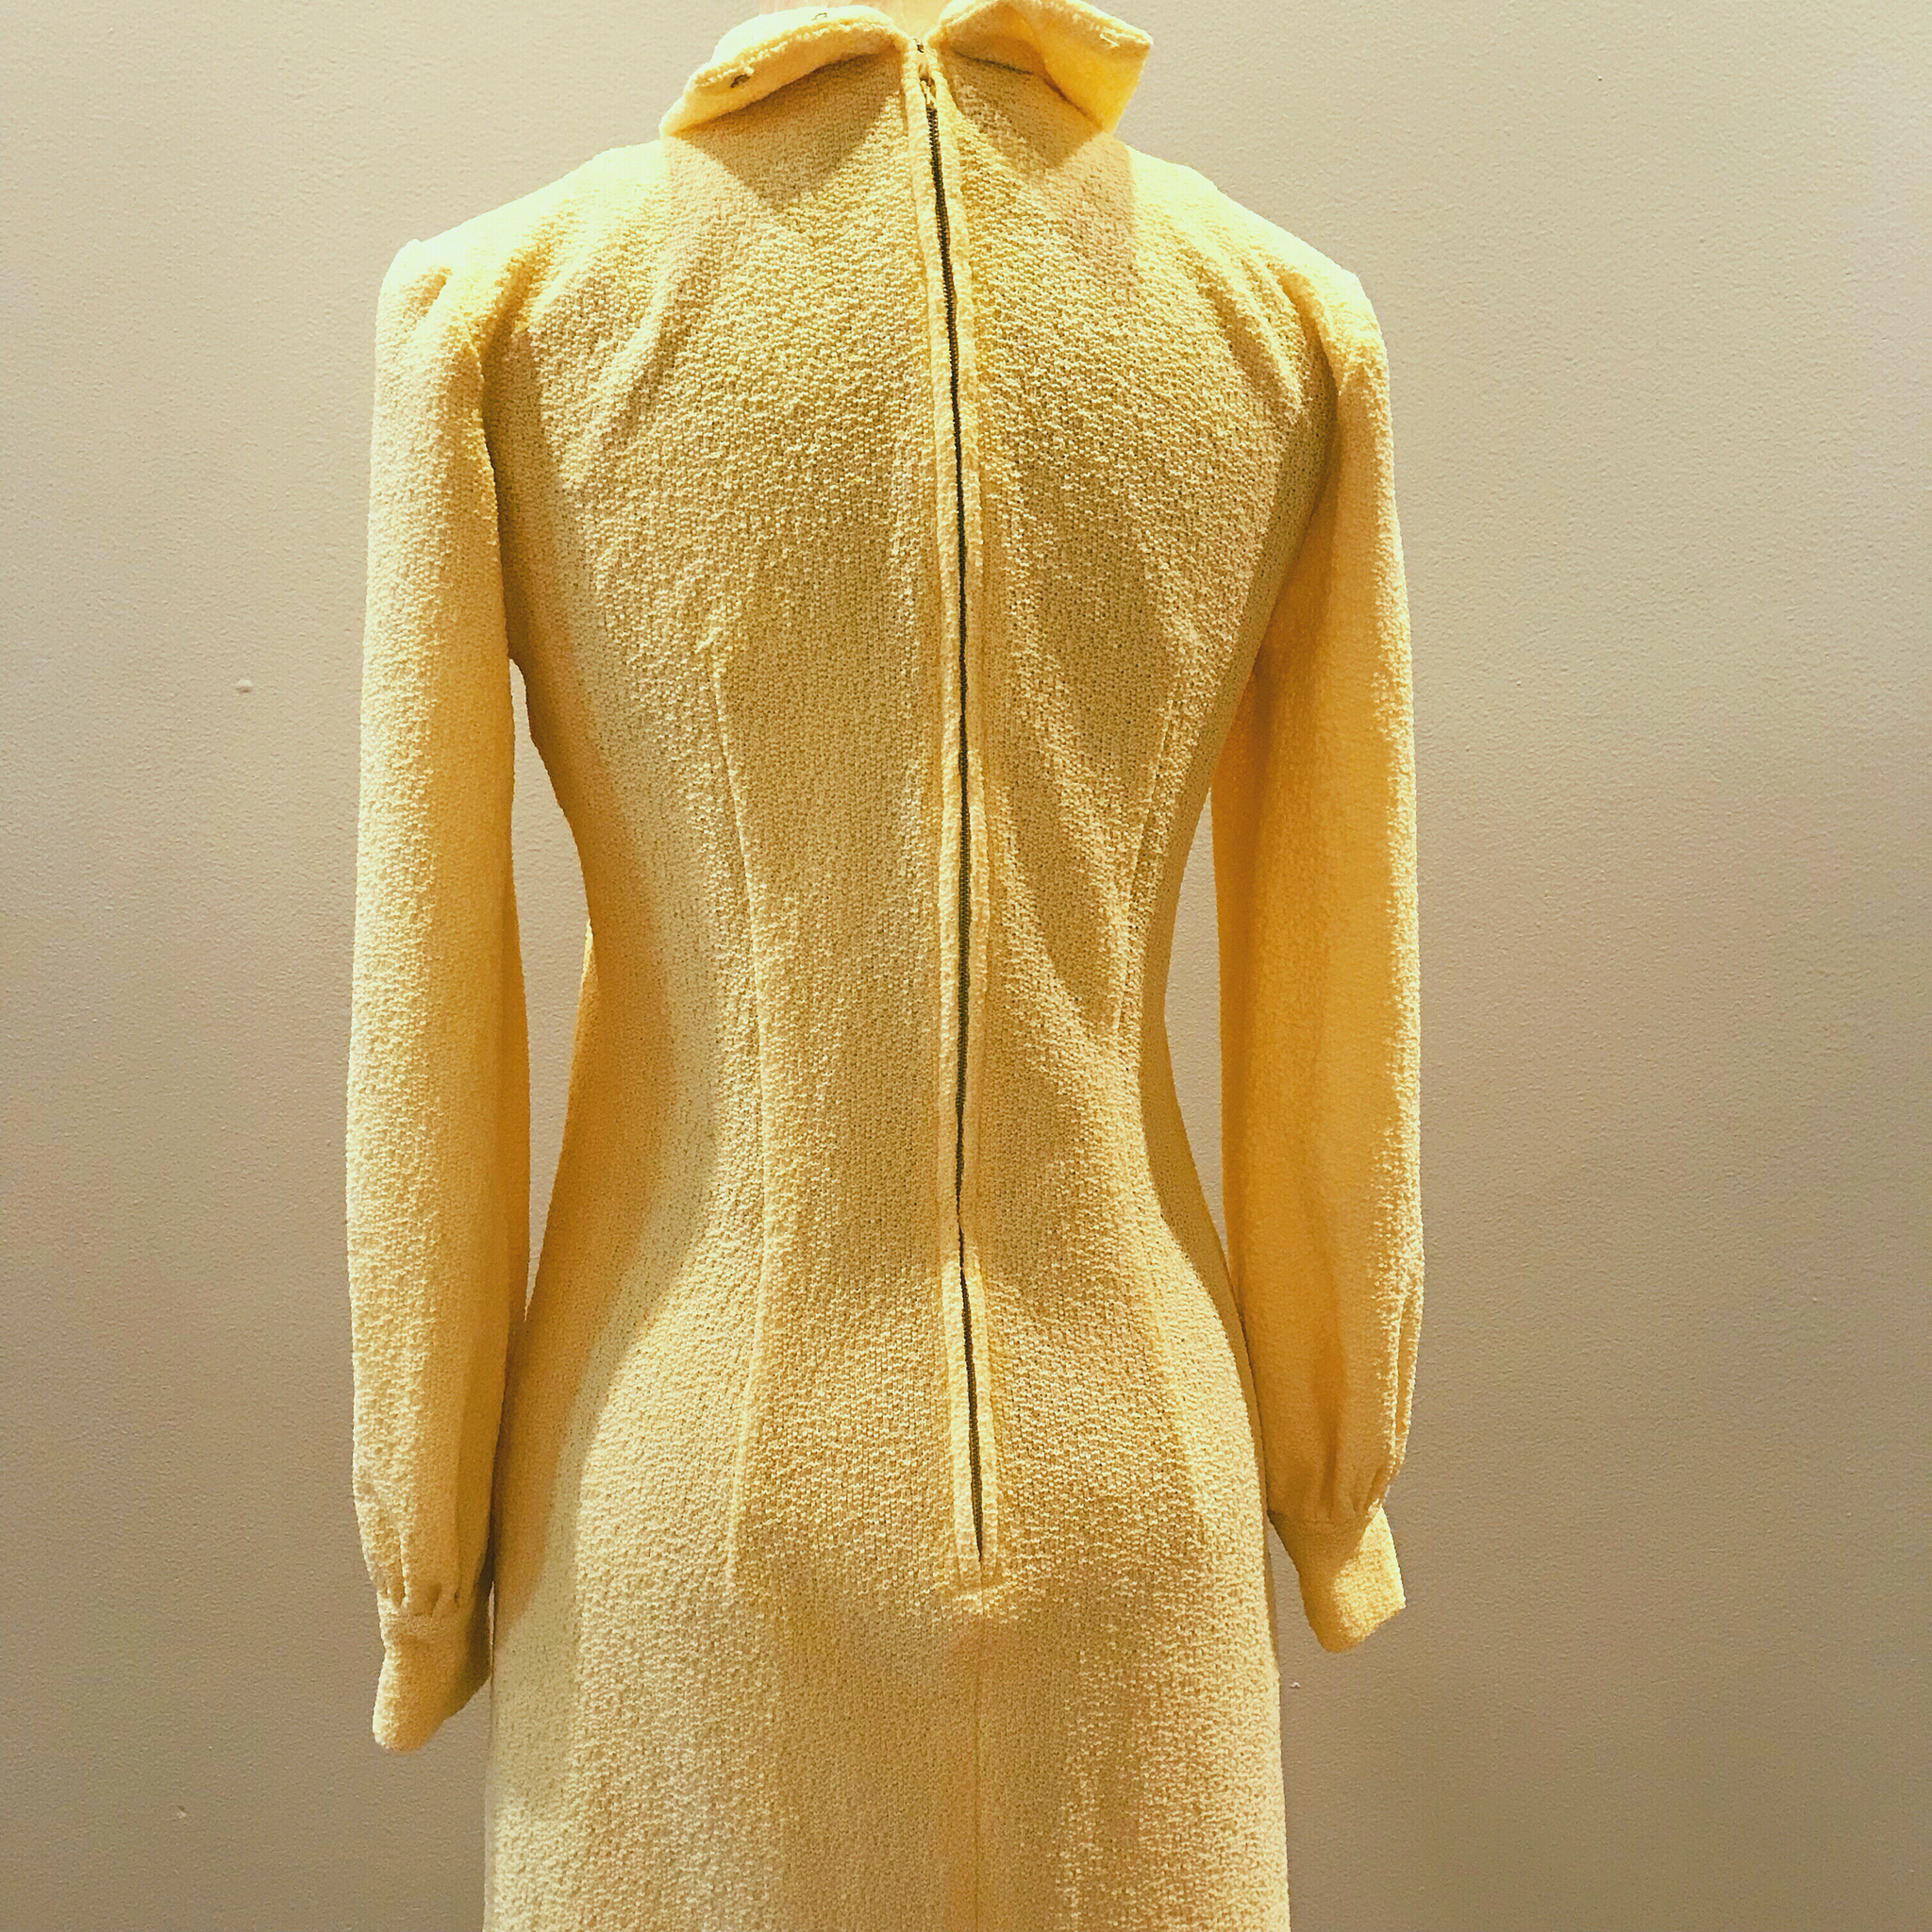 1960s Banana Shift Dress